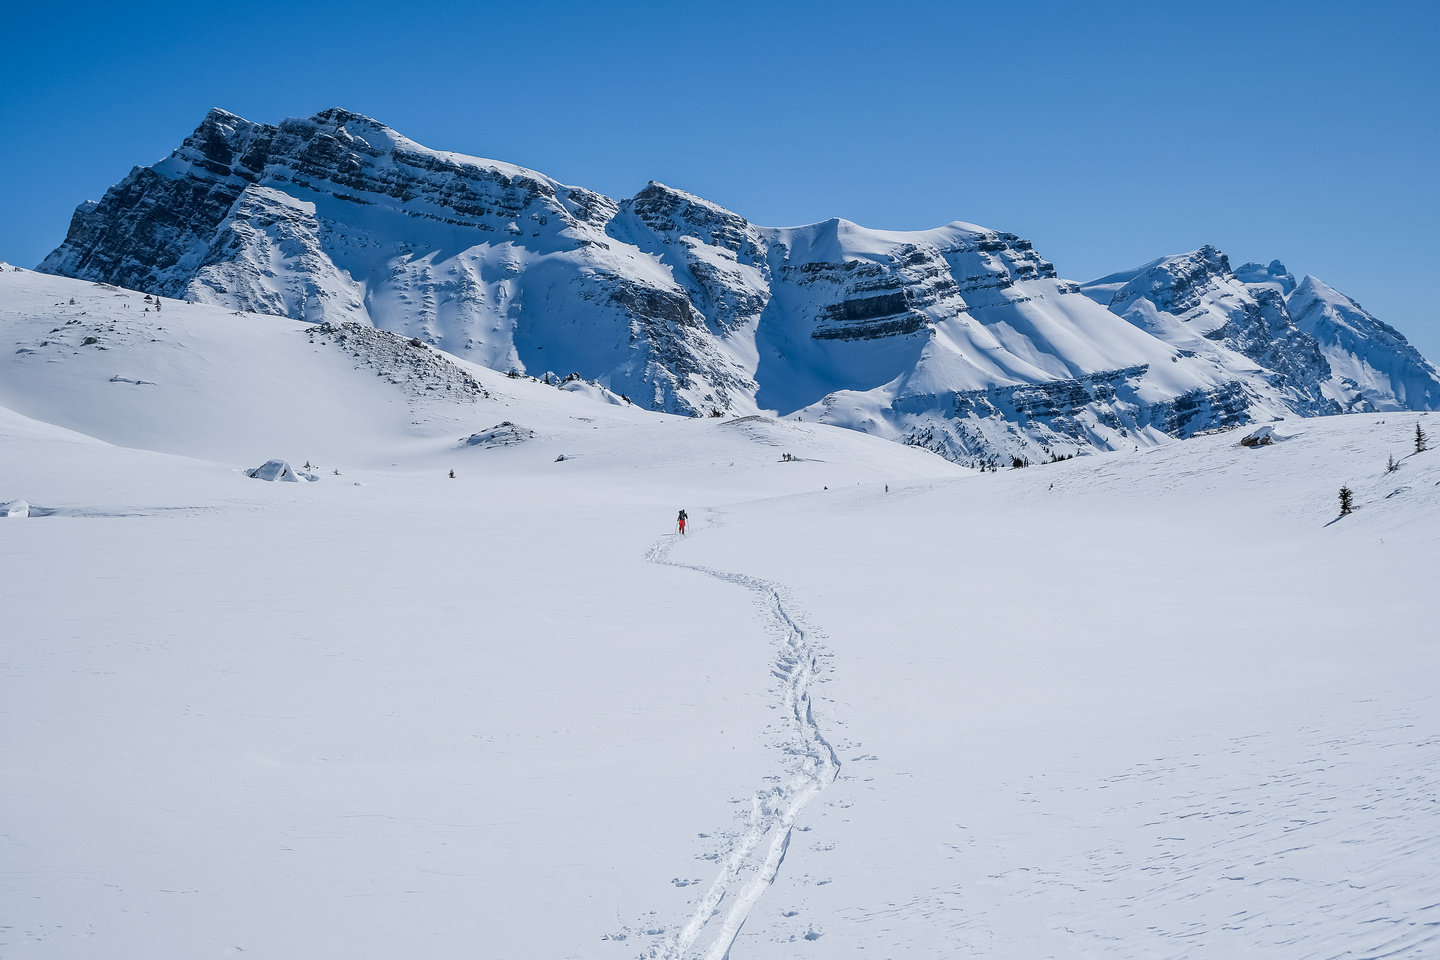 Skiing down the hanging valley towards Mosquito Creek.